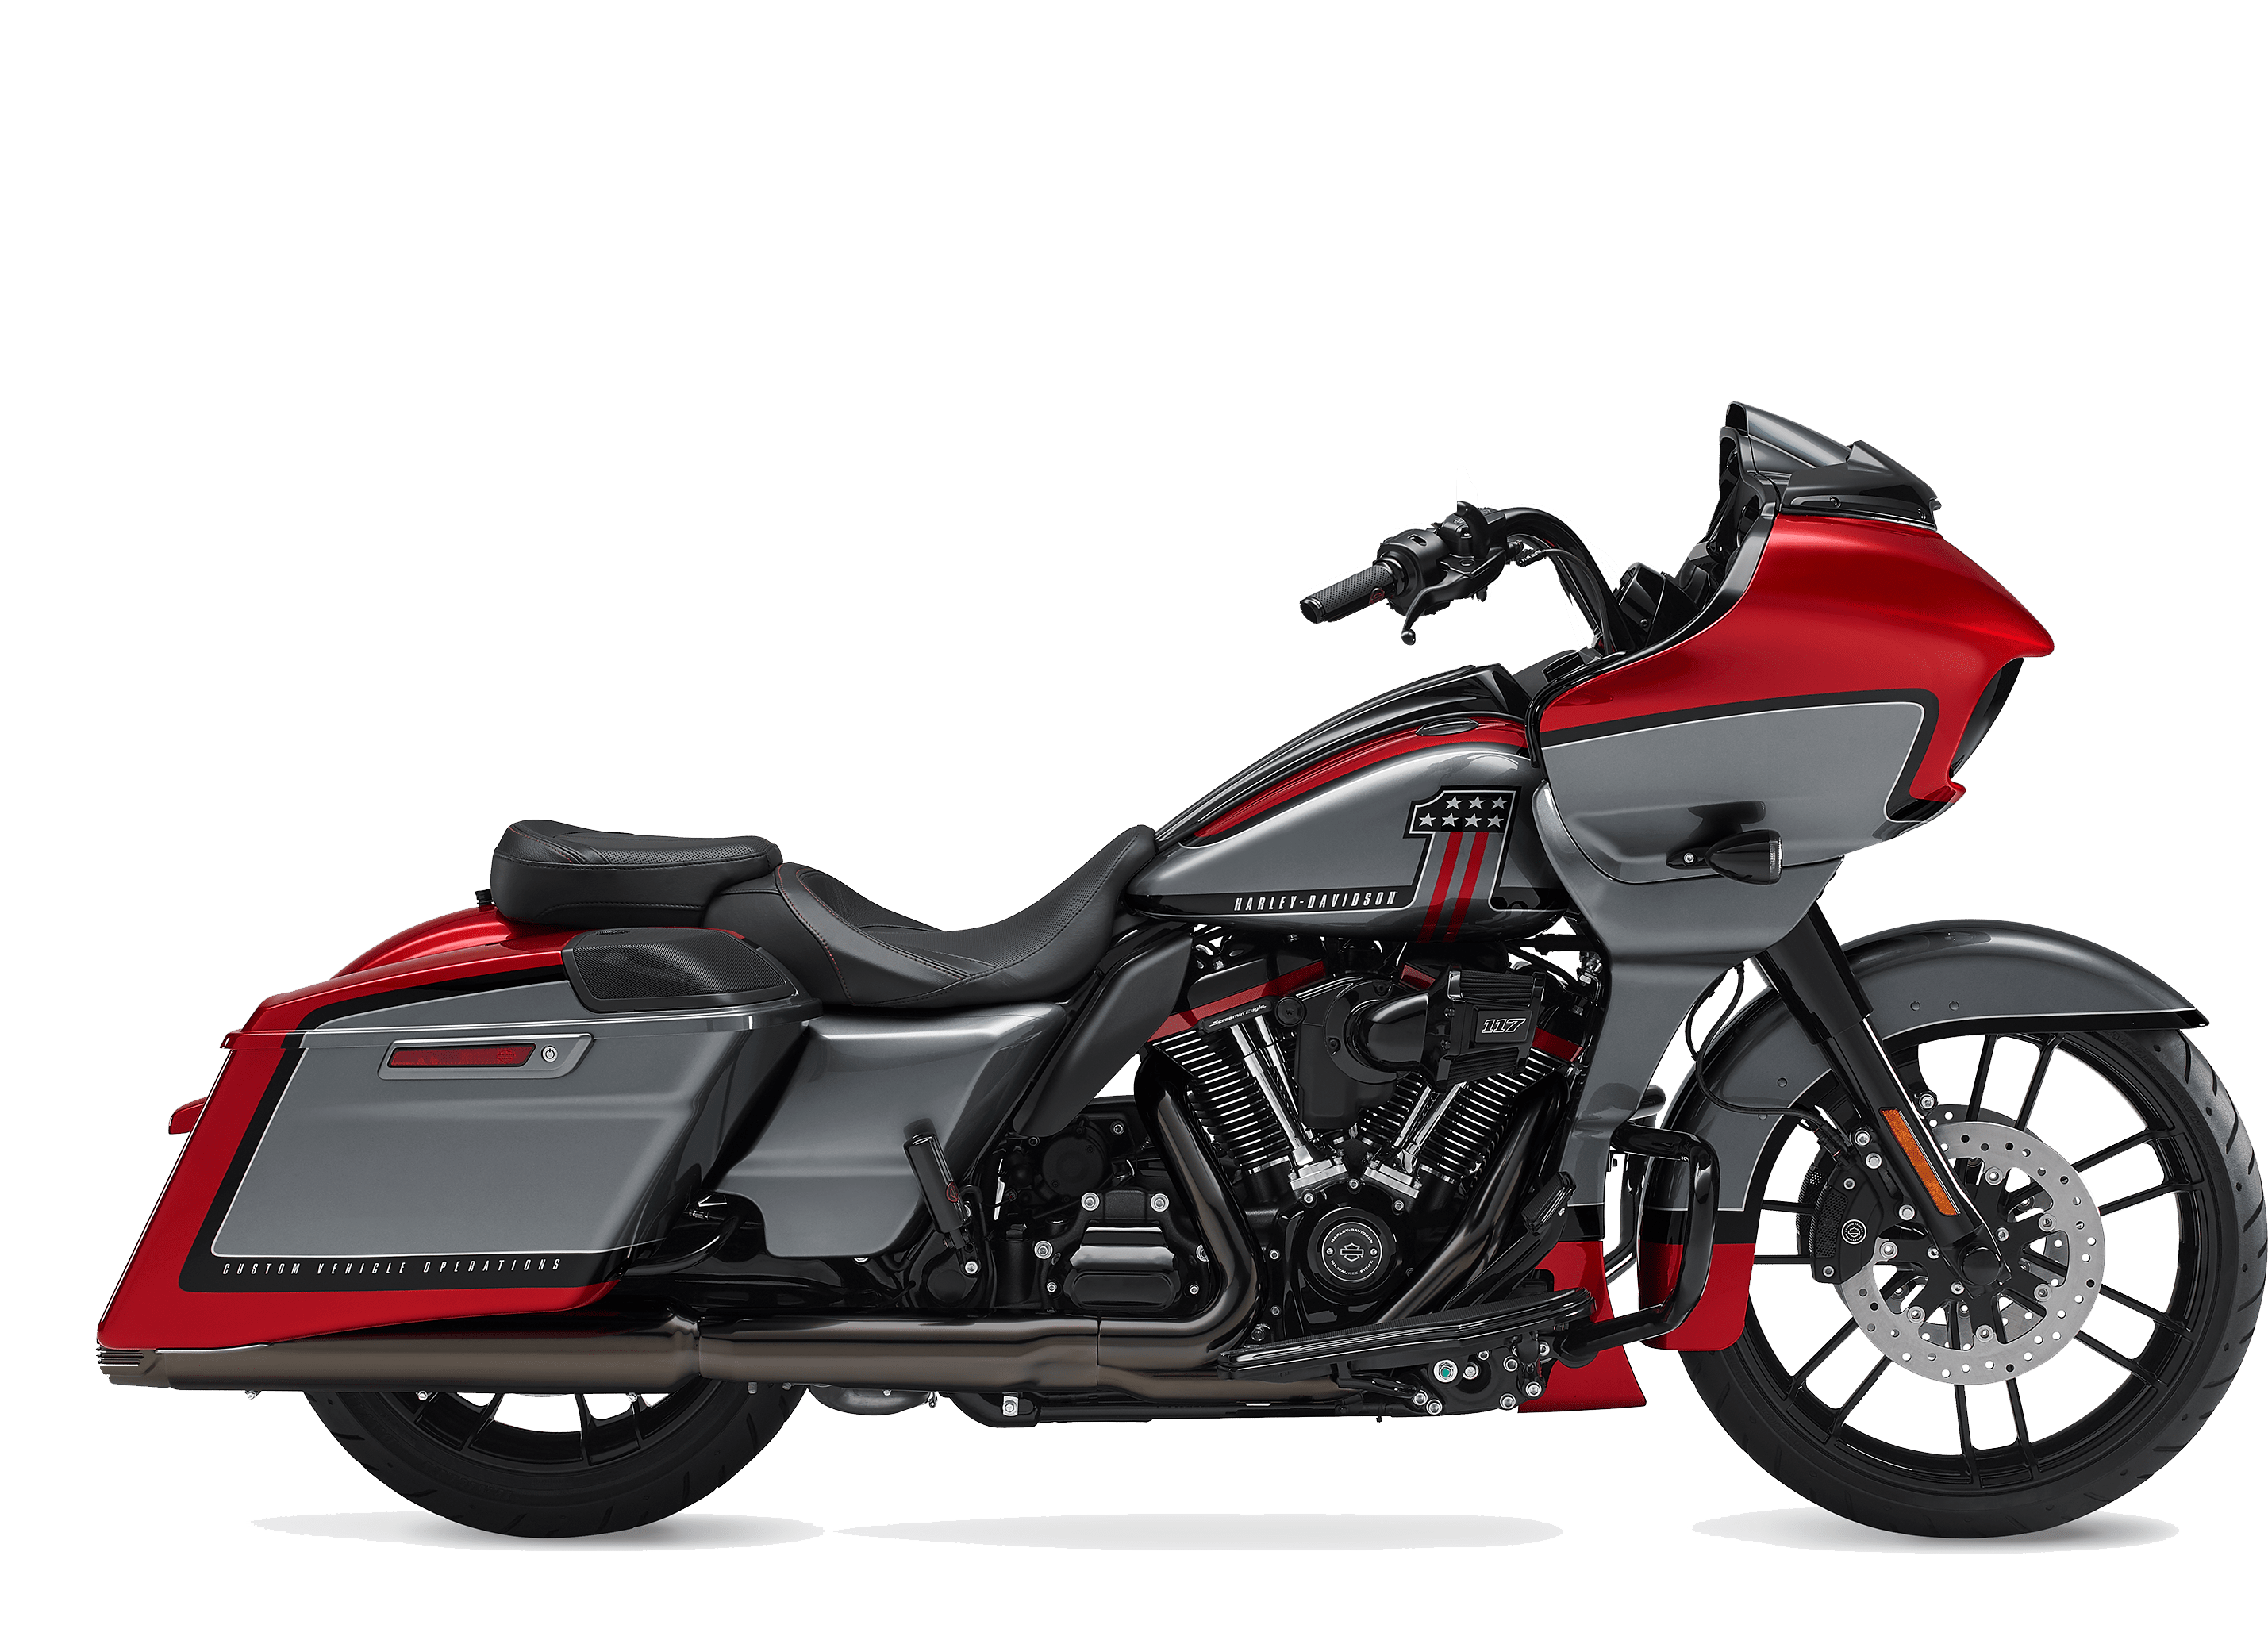 2019 Harley-Davidson H-D CVO™ Road Glide® Red Pepper Magnetic Gray with Black Hole